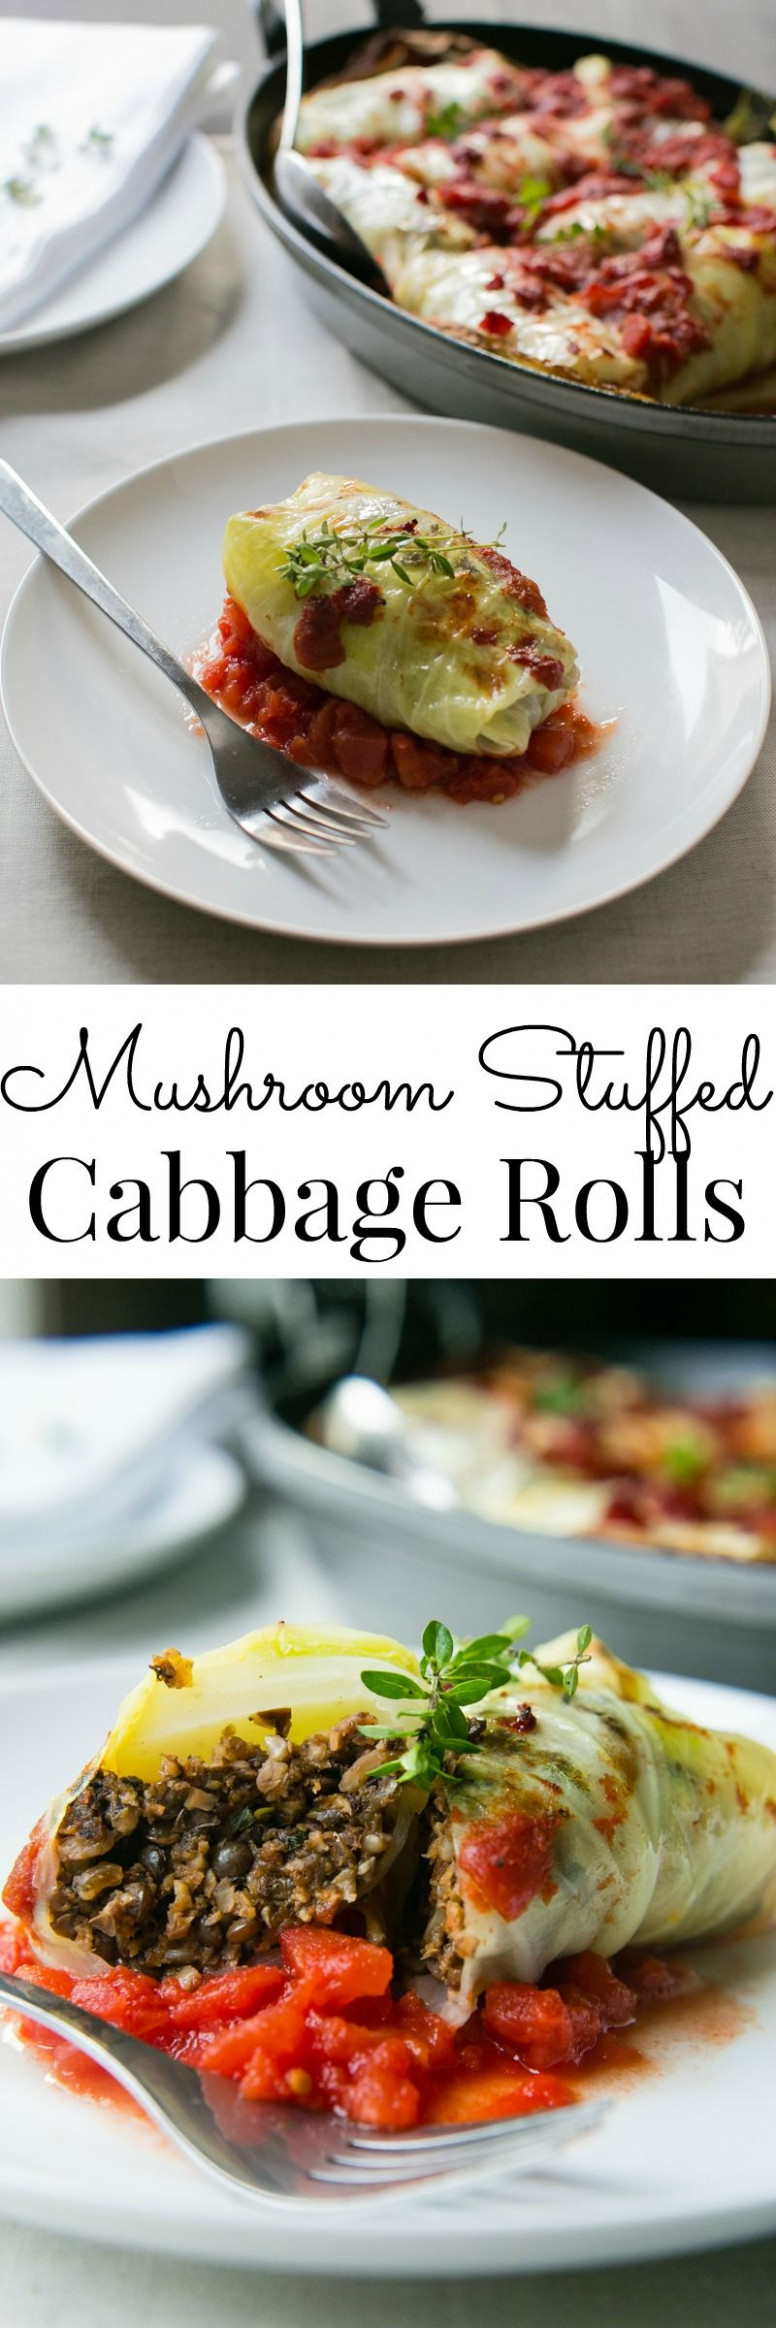 A flavor packed meal, these Mushroom Stuffed Cabbage Rolls ..